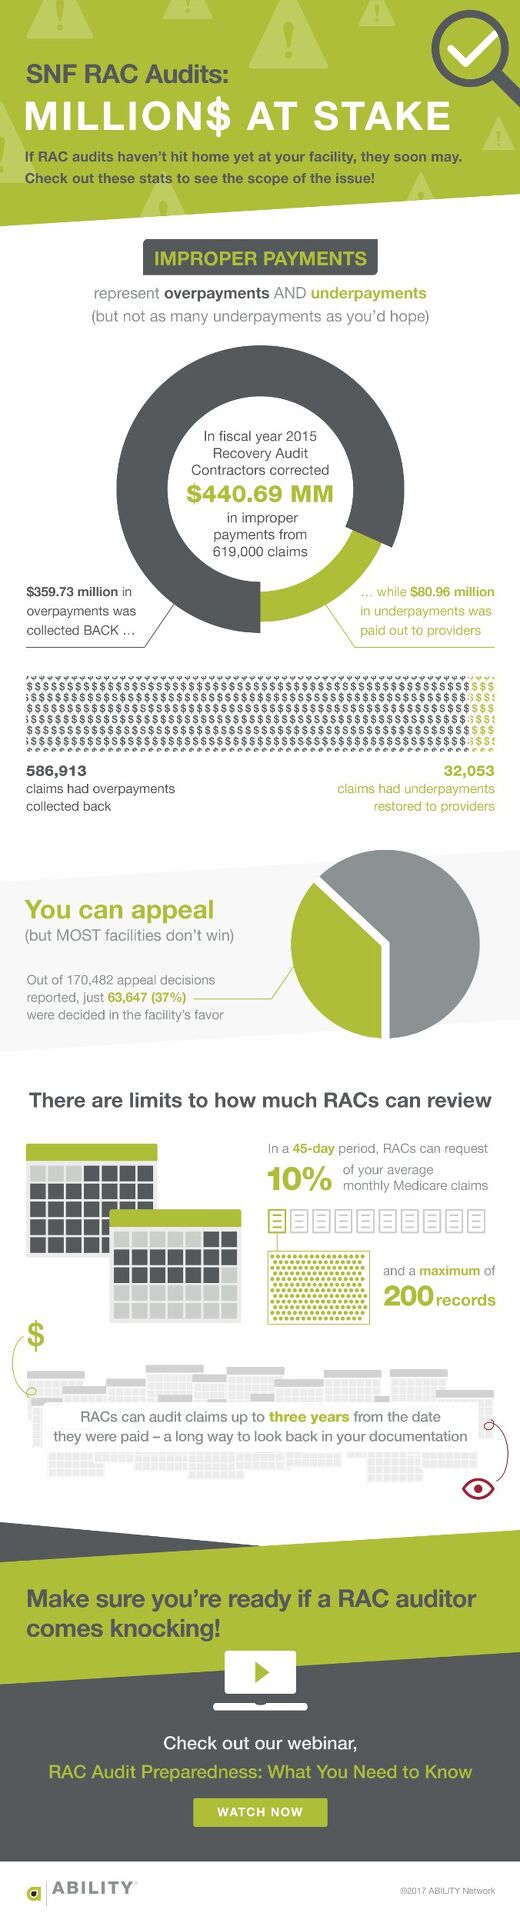 SNF RAC Audits: Millions at Stake